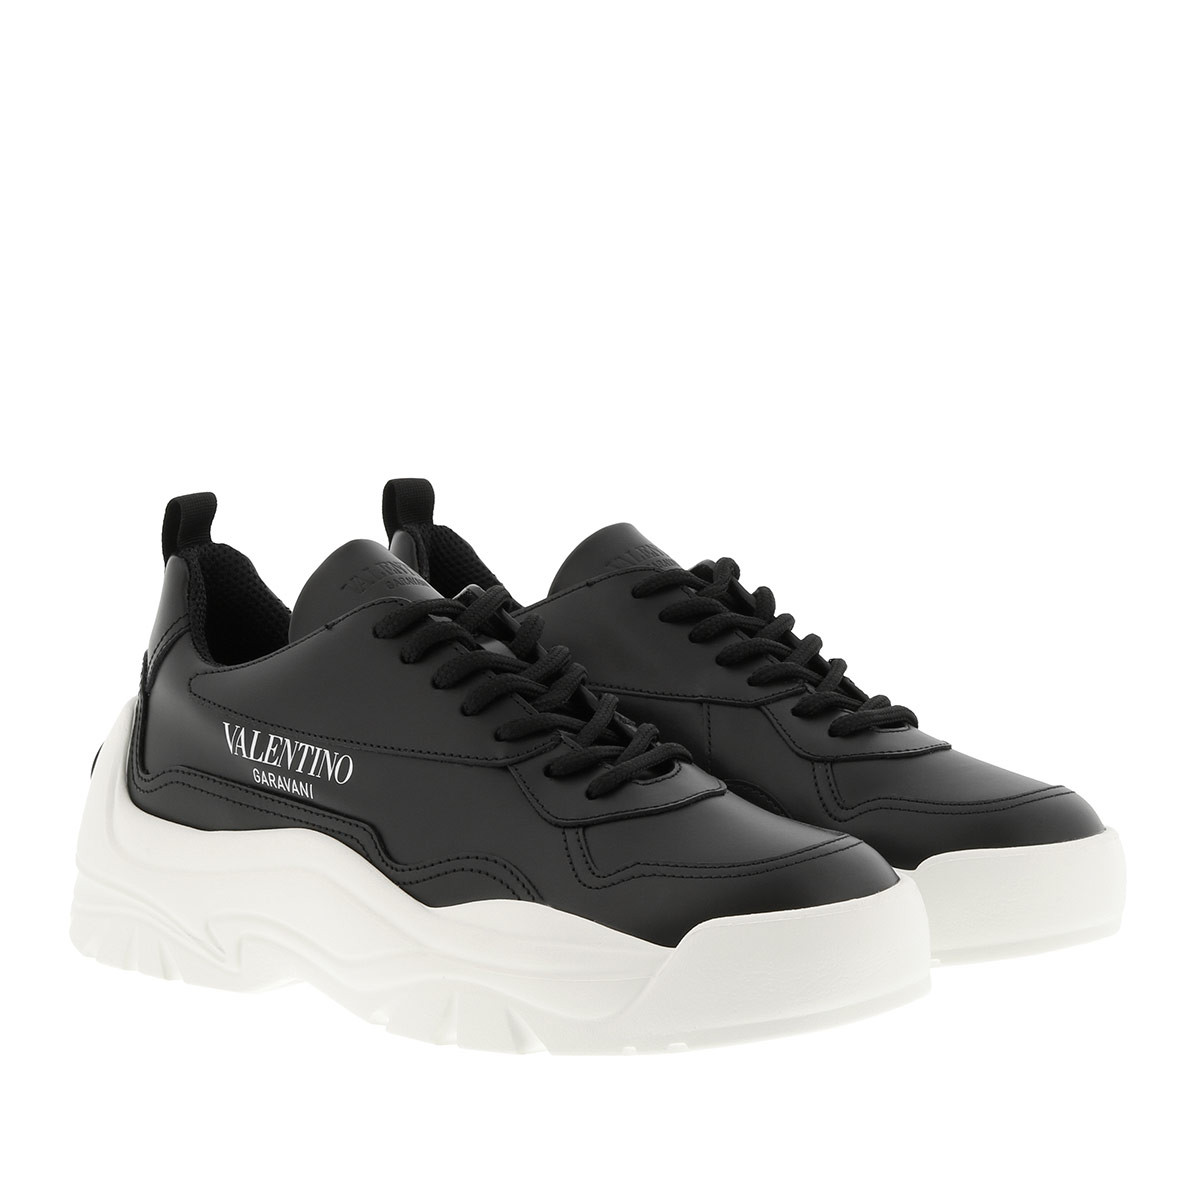 Valentino Sneakers - Gumboy Sneakers Leather Black - in schwarz - für Damen